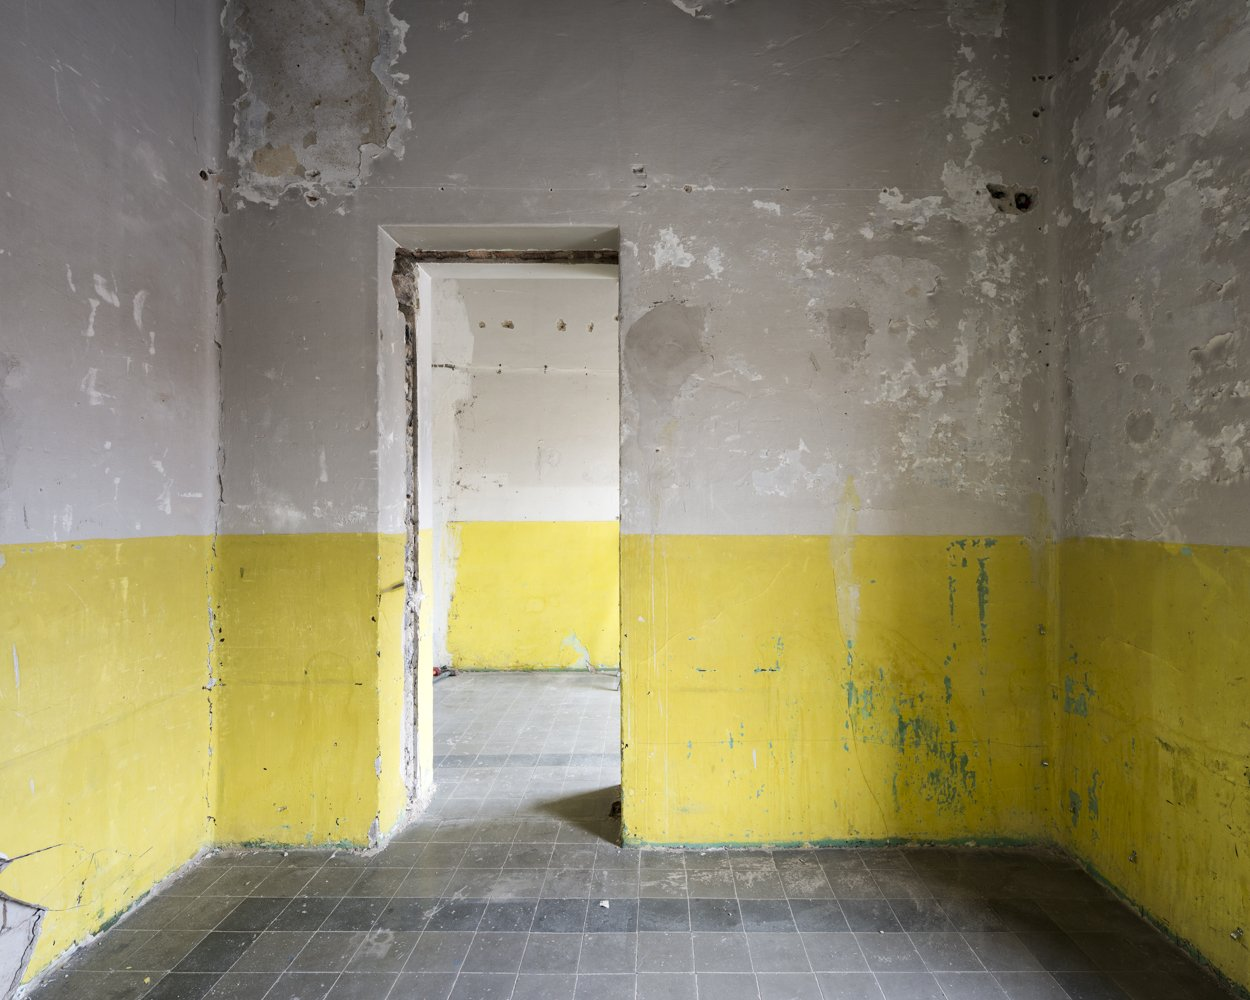 yellow room - EMPTINESS - cesar azcarate photography, galleries, emptiness